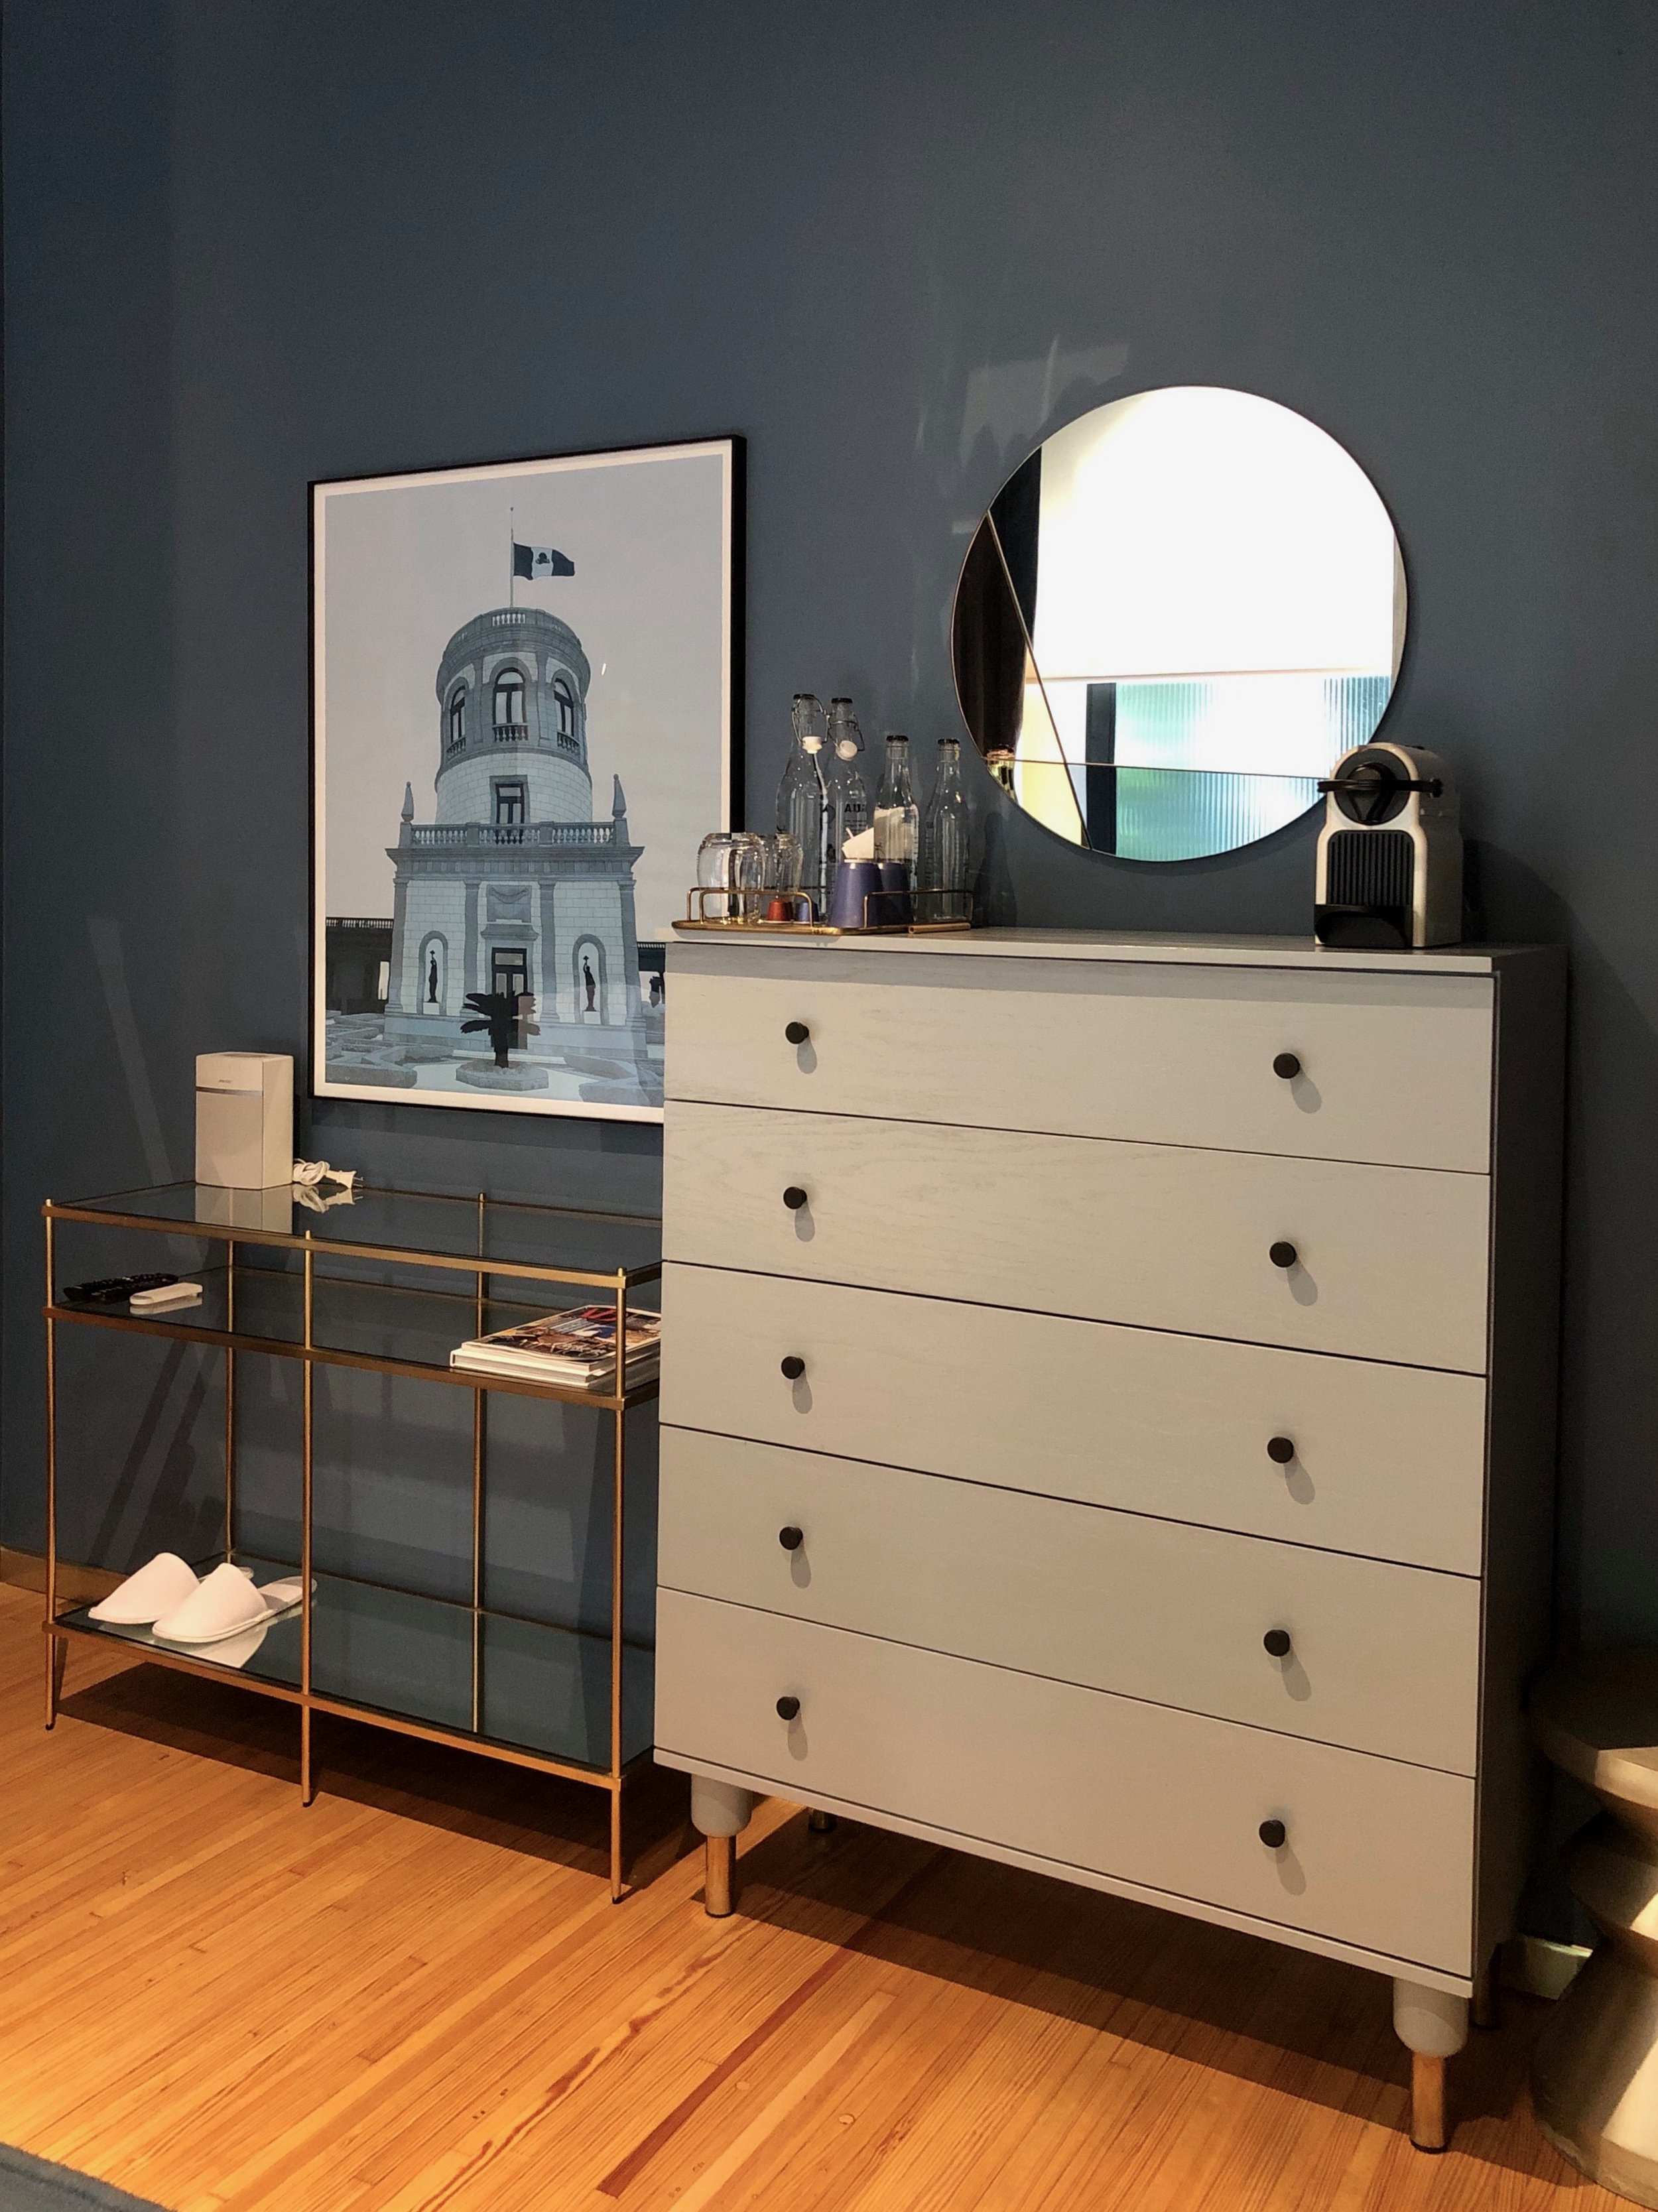 There's plenty of storage in the rooms, including this dresser